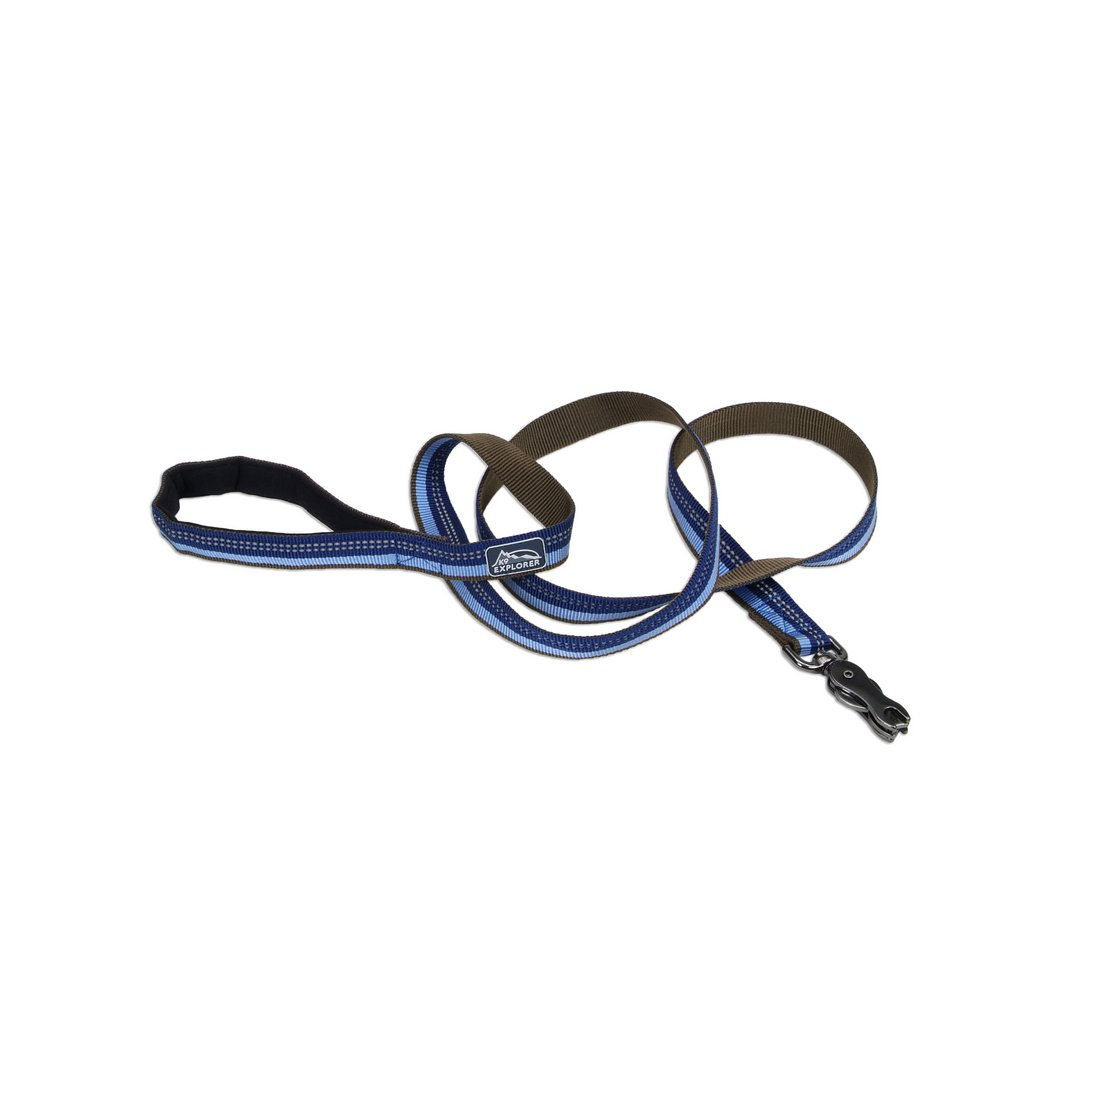 k9-explorer-dog-leash-saphire